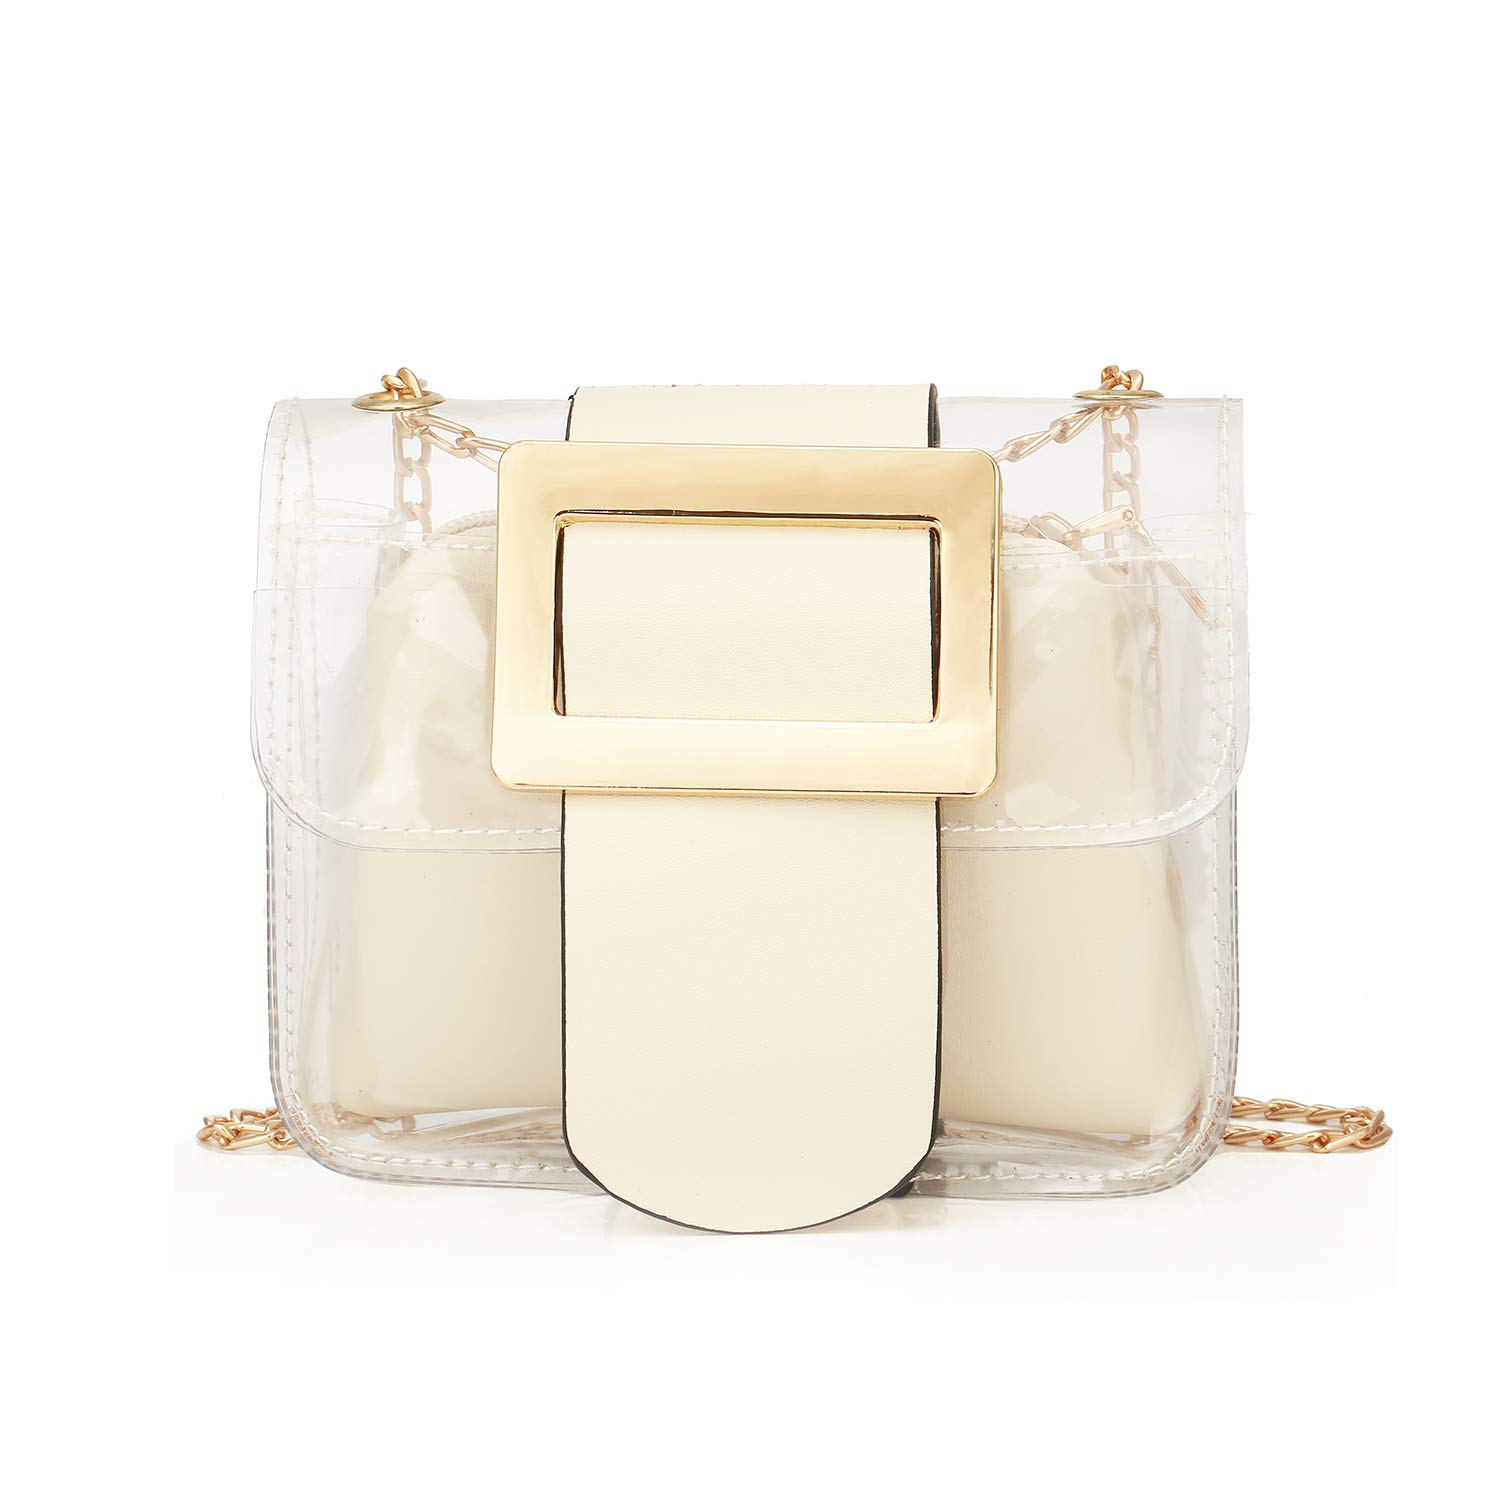 Clear Handbags 2-in-1 Tote Transparent Shoulder Bag Fashion Shoulder Crossbody Purse,White